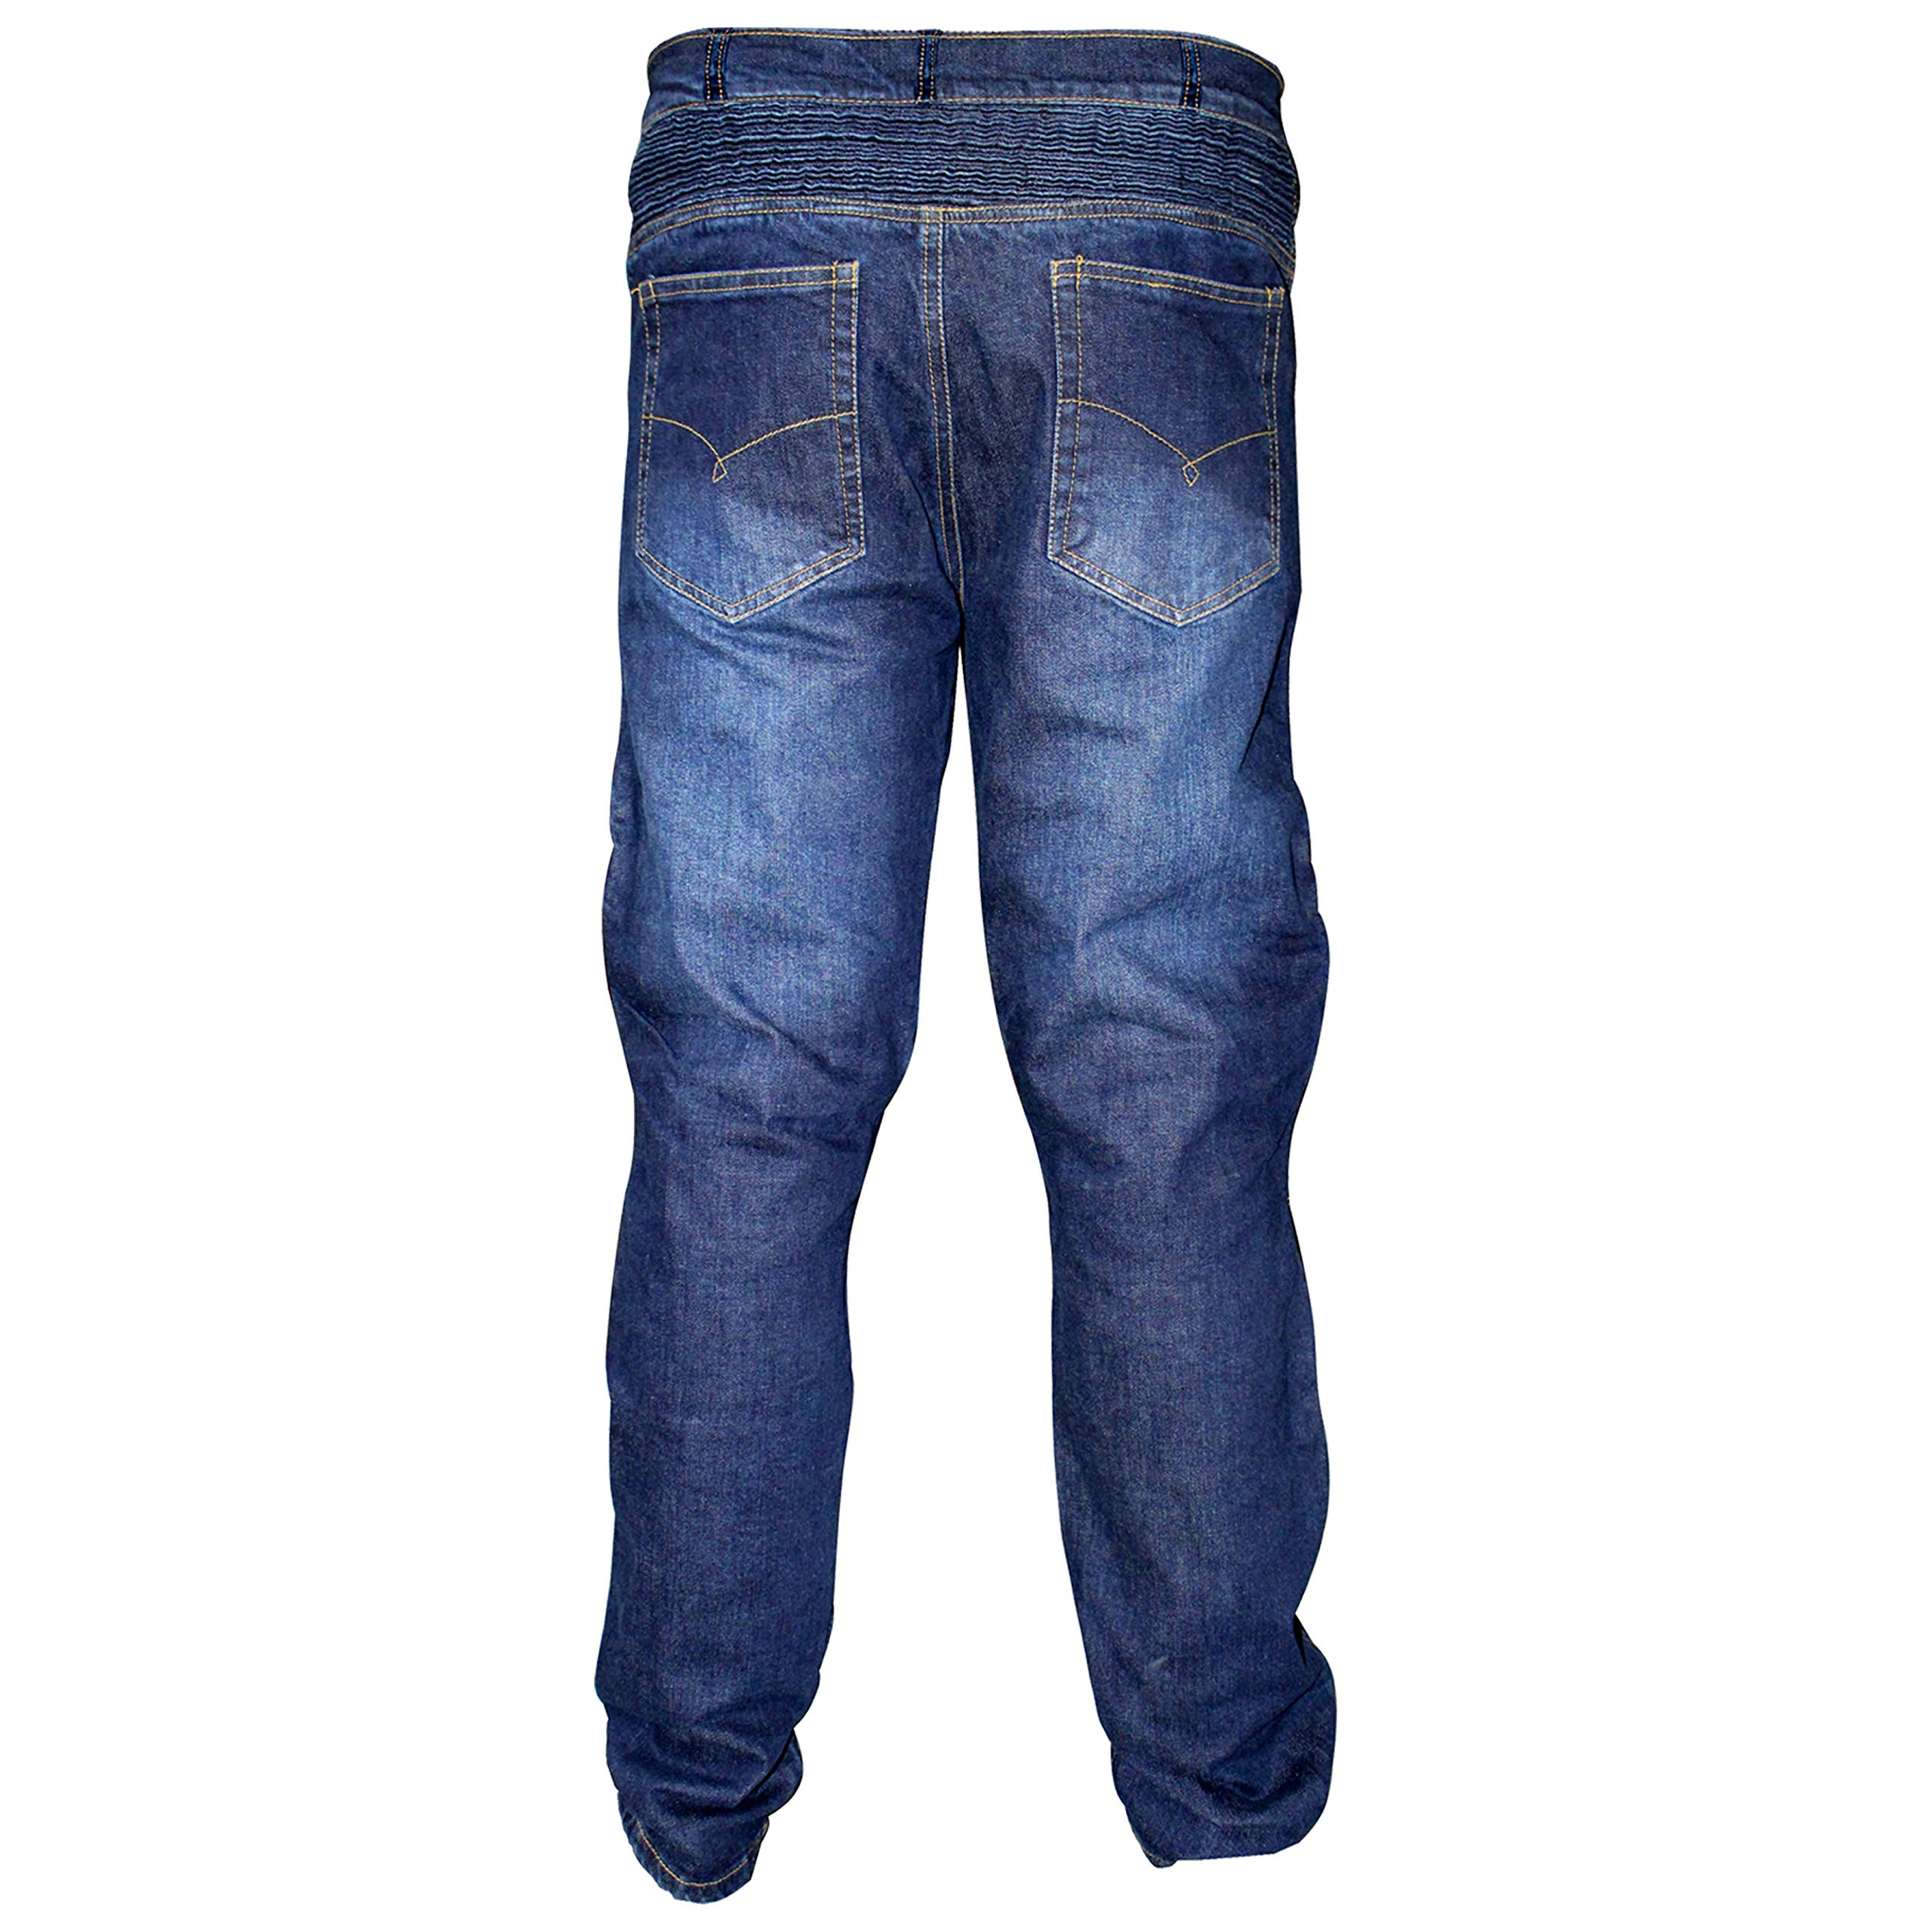 REXTEK Motorbike Motorcycle Armoured Jeans Pant Denim Trousers with Safety Protection - Jeans with 2X Knee Guards 2X Hip Guards for Men Boys/Size 6XL Waist - 46